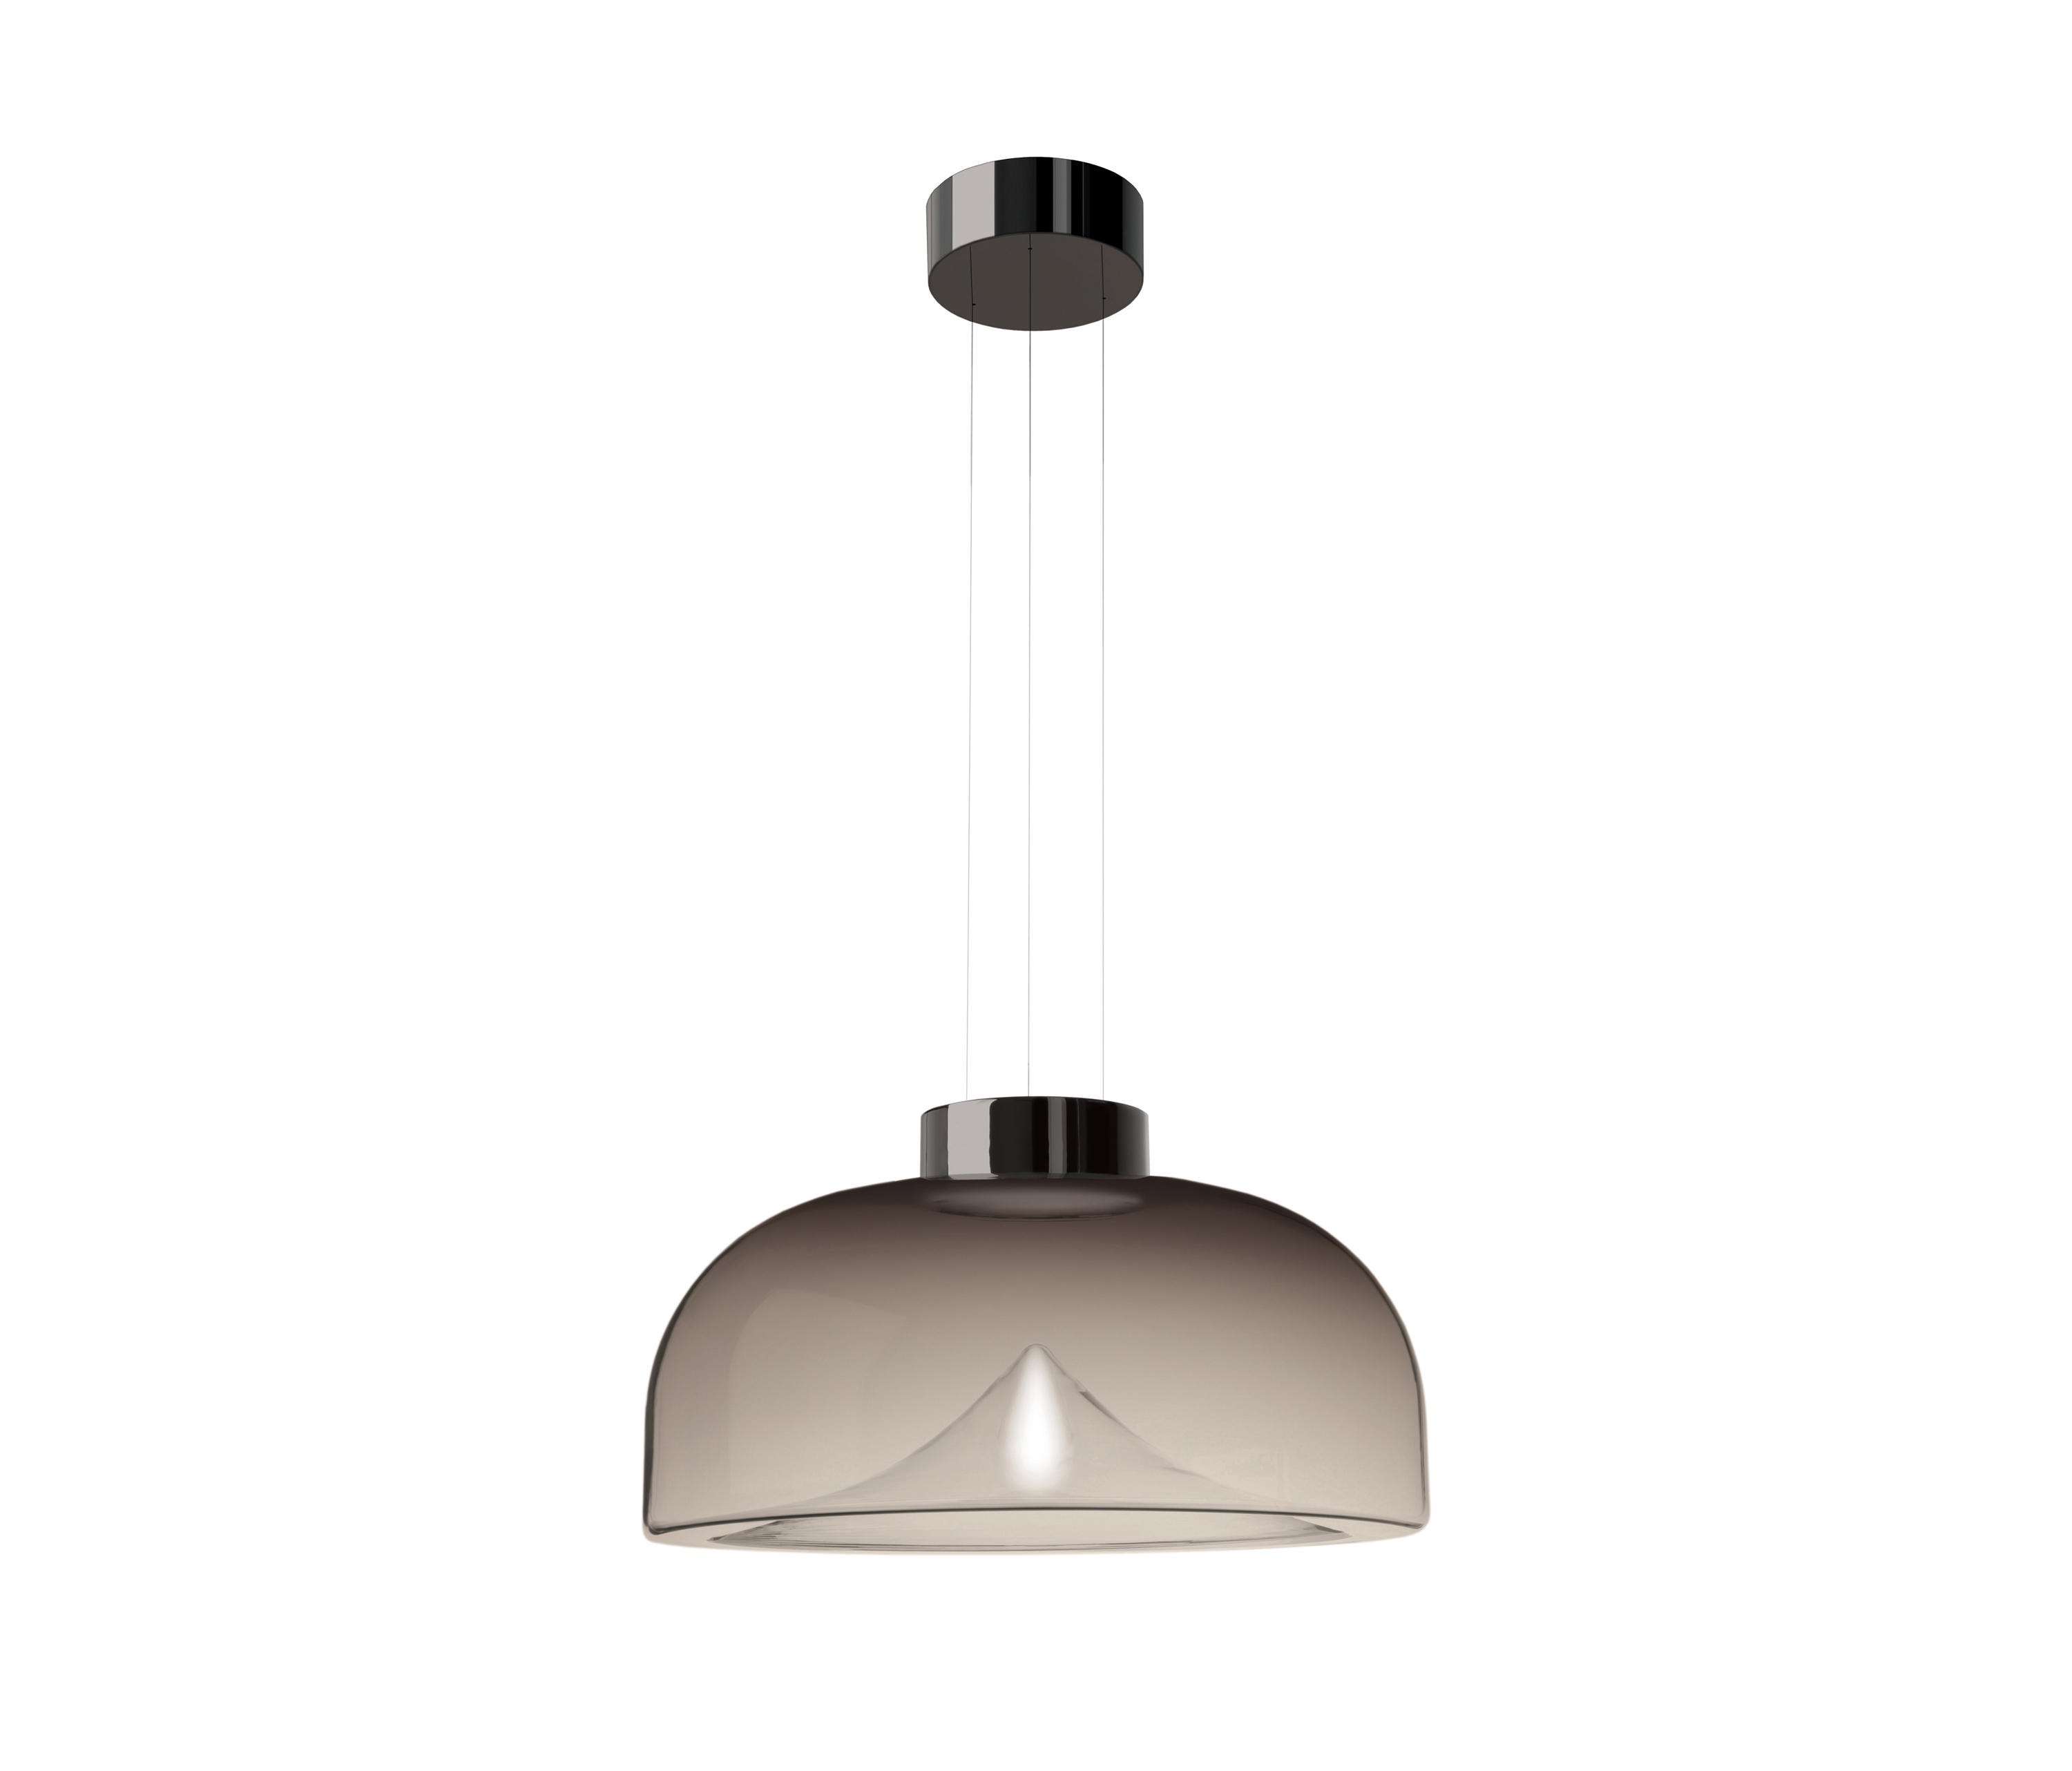 Aella S Suspended Lights From Leucos Architonic